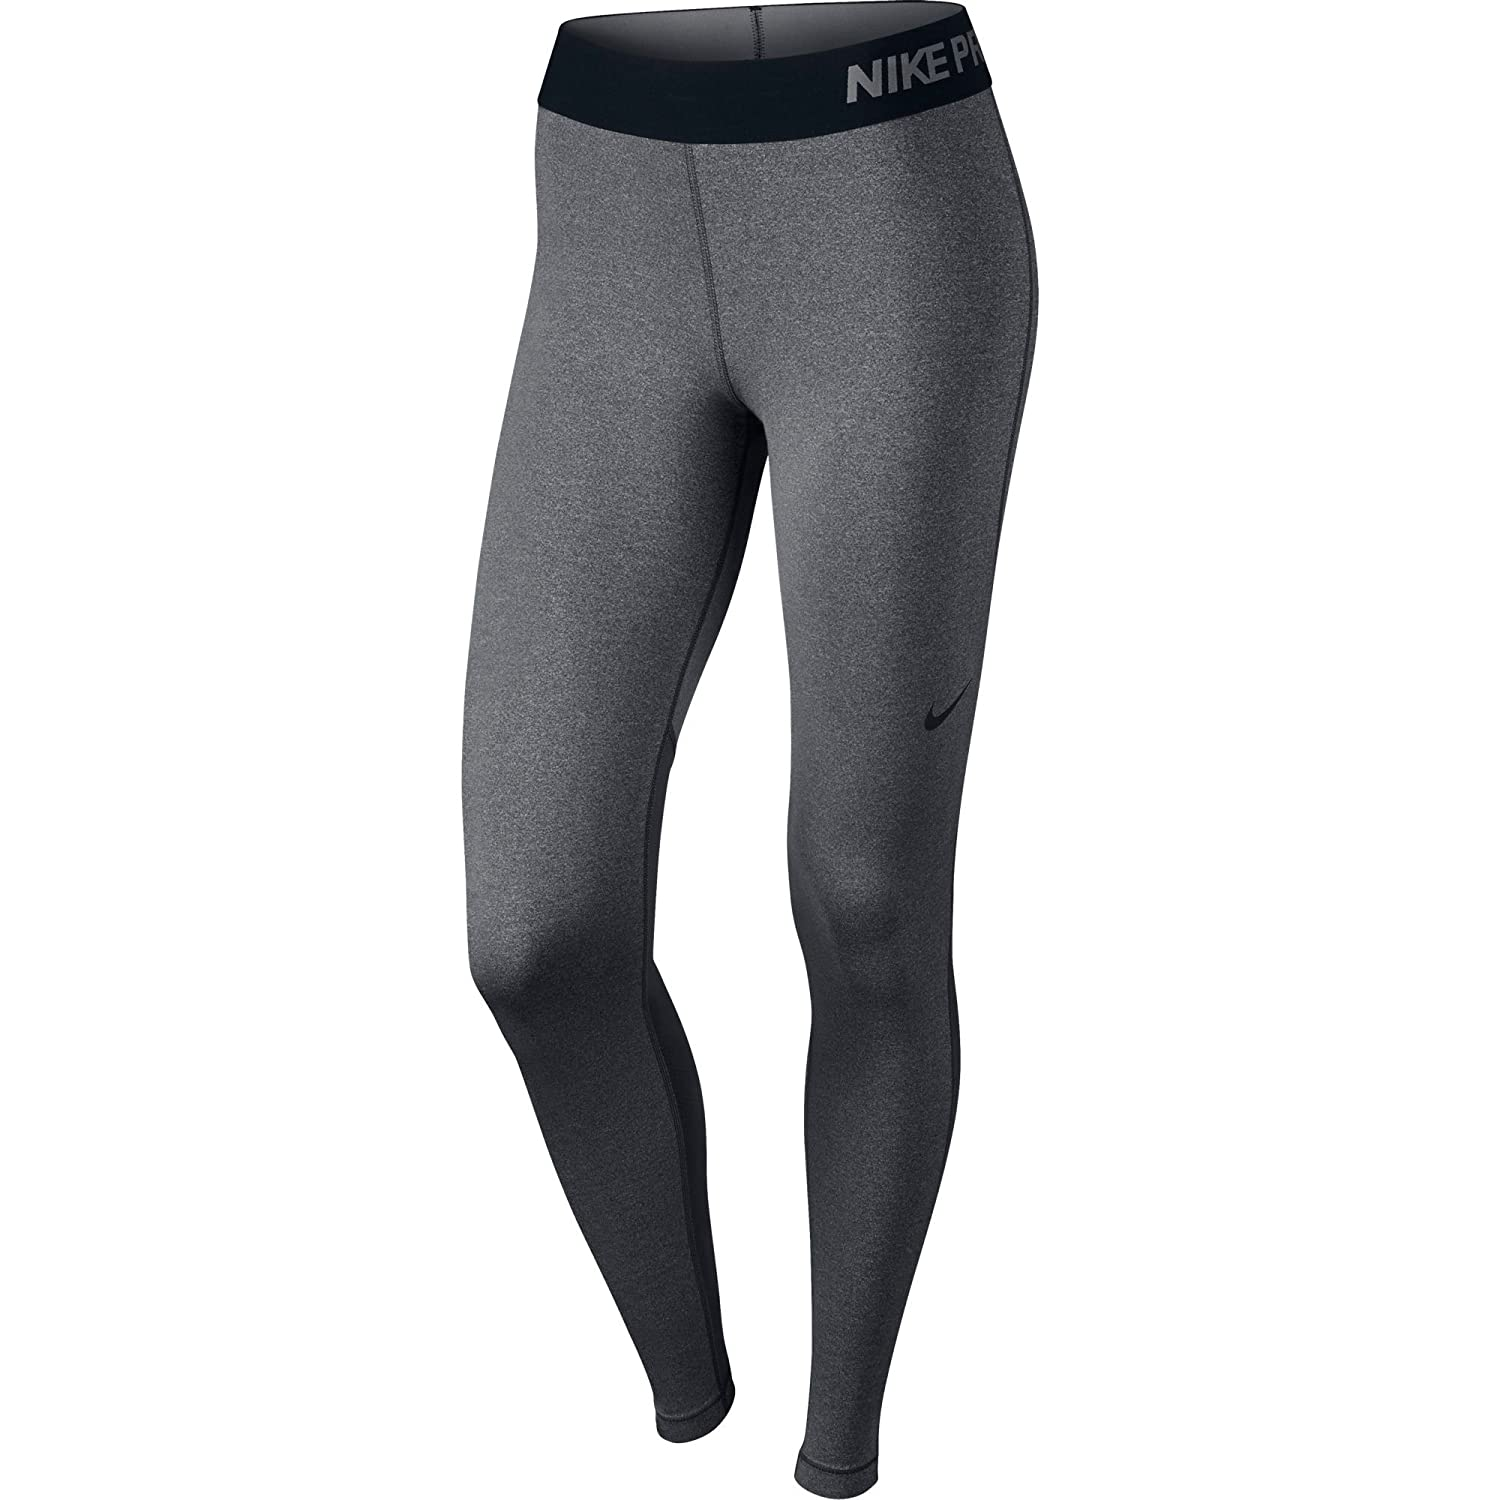 Nike. Just Do It - Nike Legend - Tights - Cool Grey/White (R42t2100)